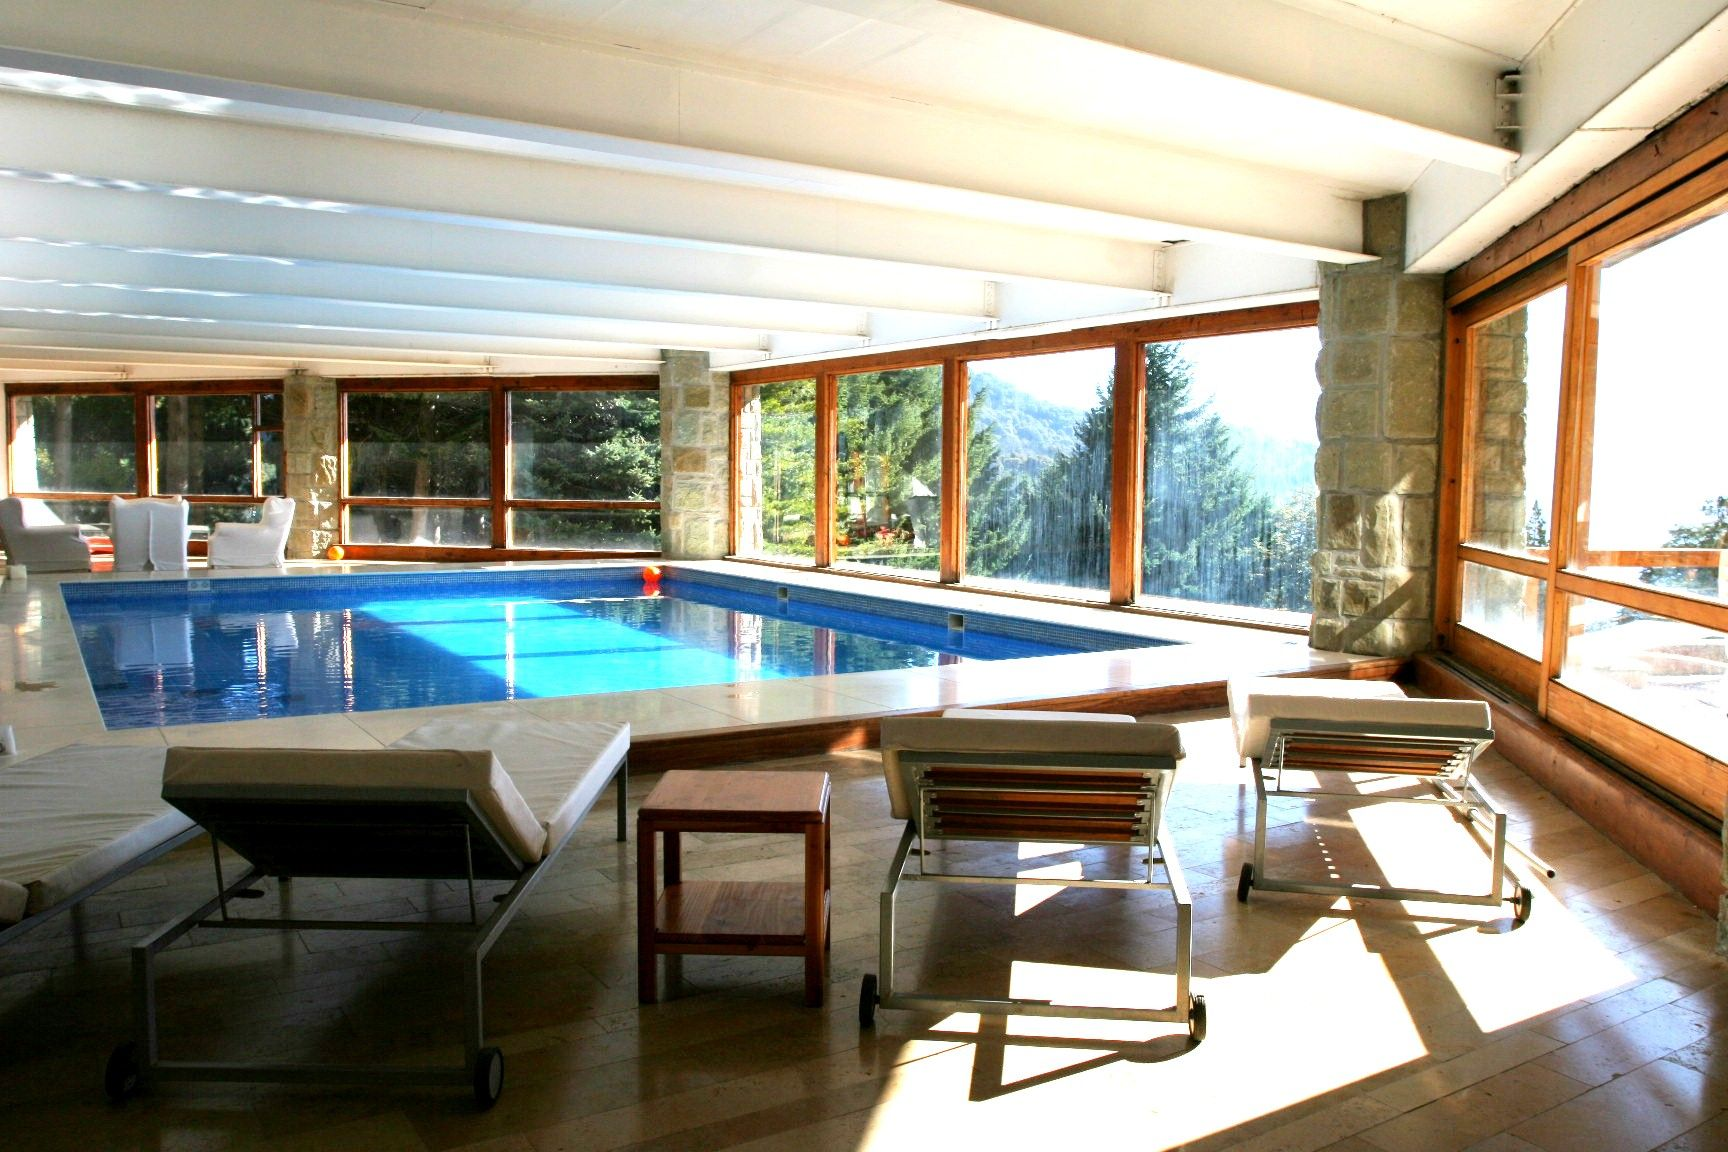 The pool. A perfect place for submerging into the weekend and waiting for a stunning #sunset over the lake. #NahuelHuapi #Bariloche